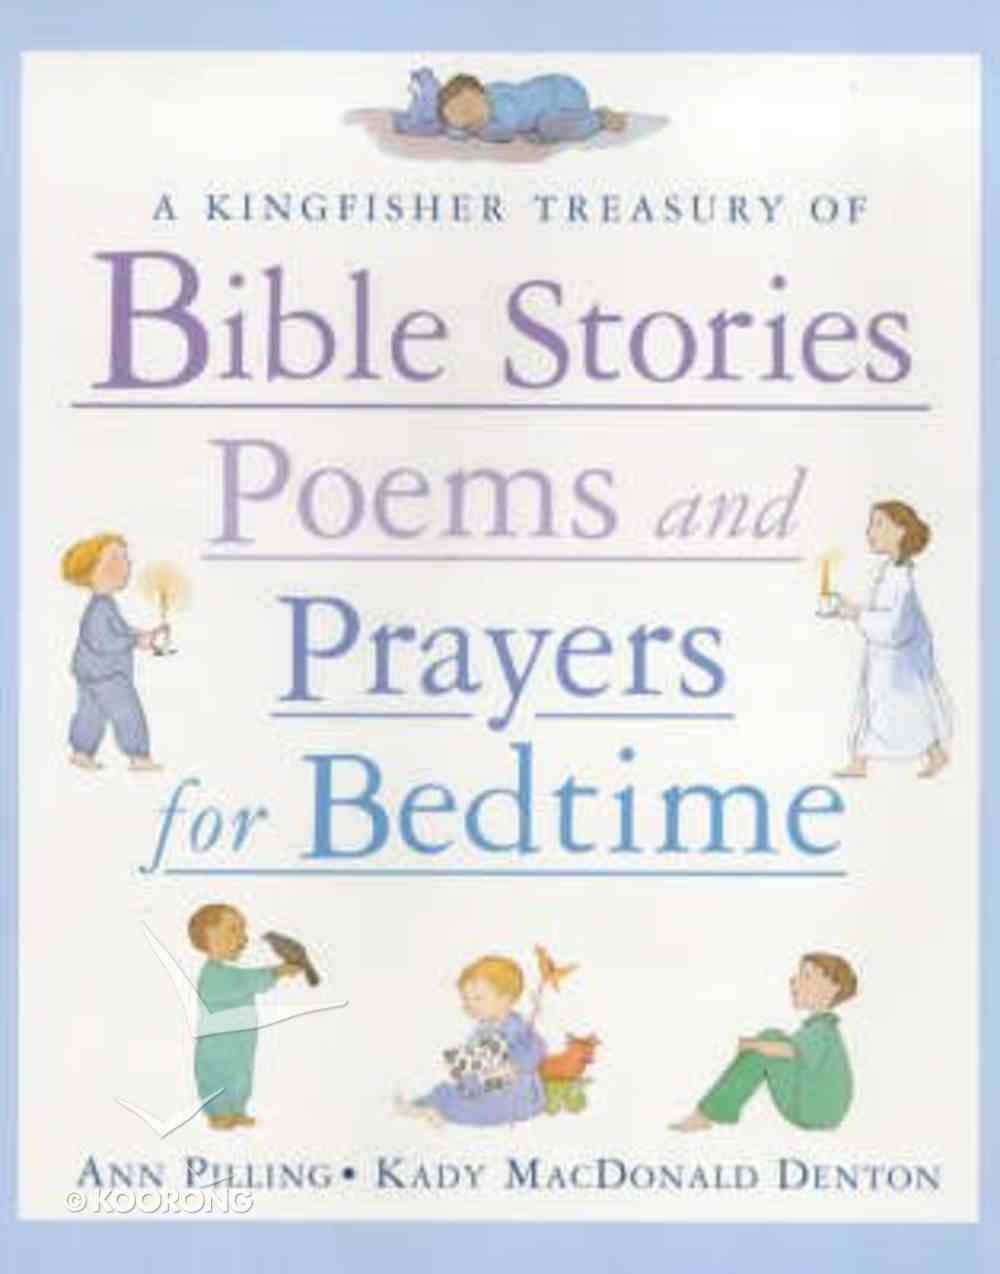 Kingfisher Treasury of Bible Stories, Poems and Prayers For Bedtime Hardback